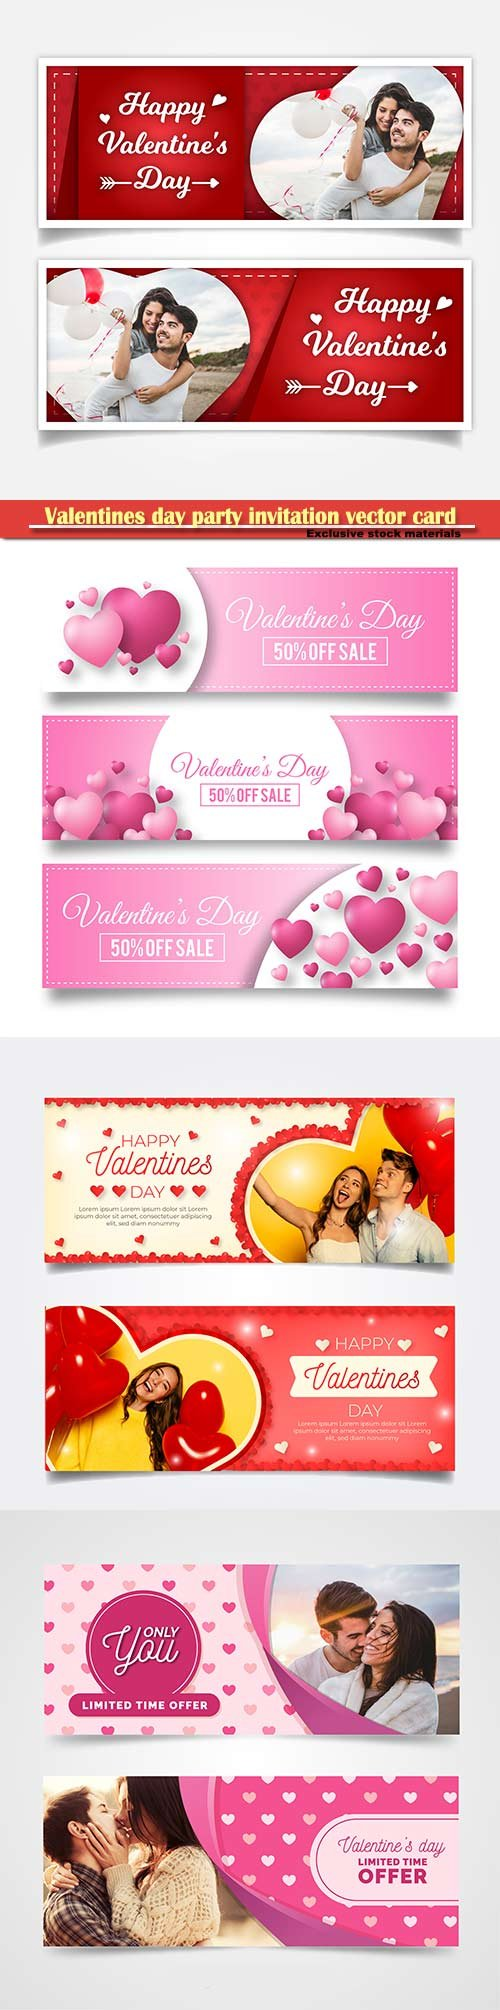 Valentines day party invitation vector card # 54